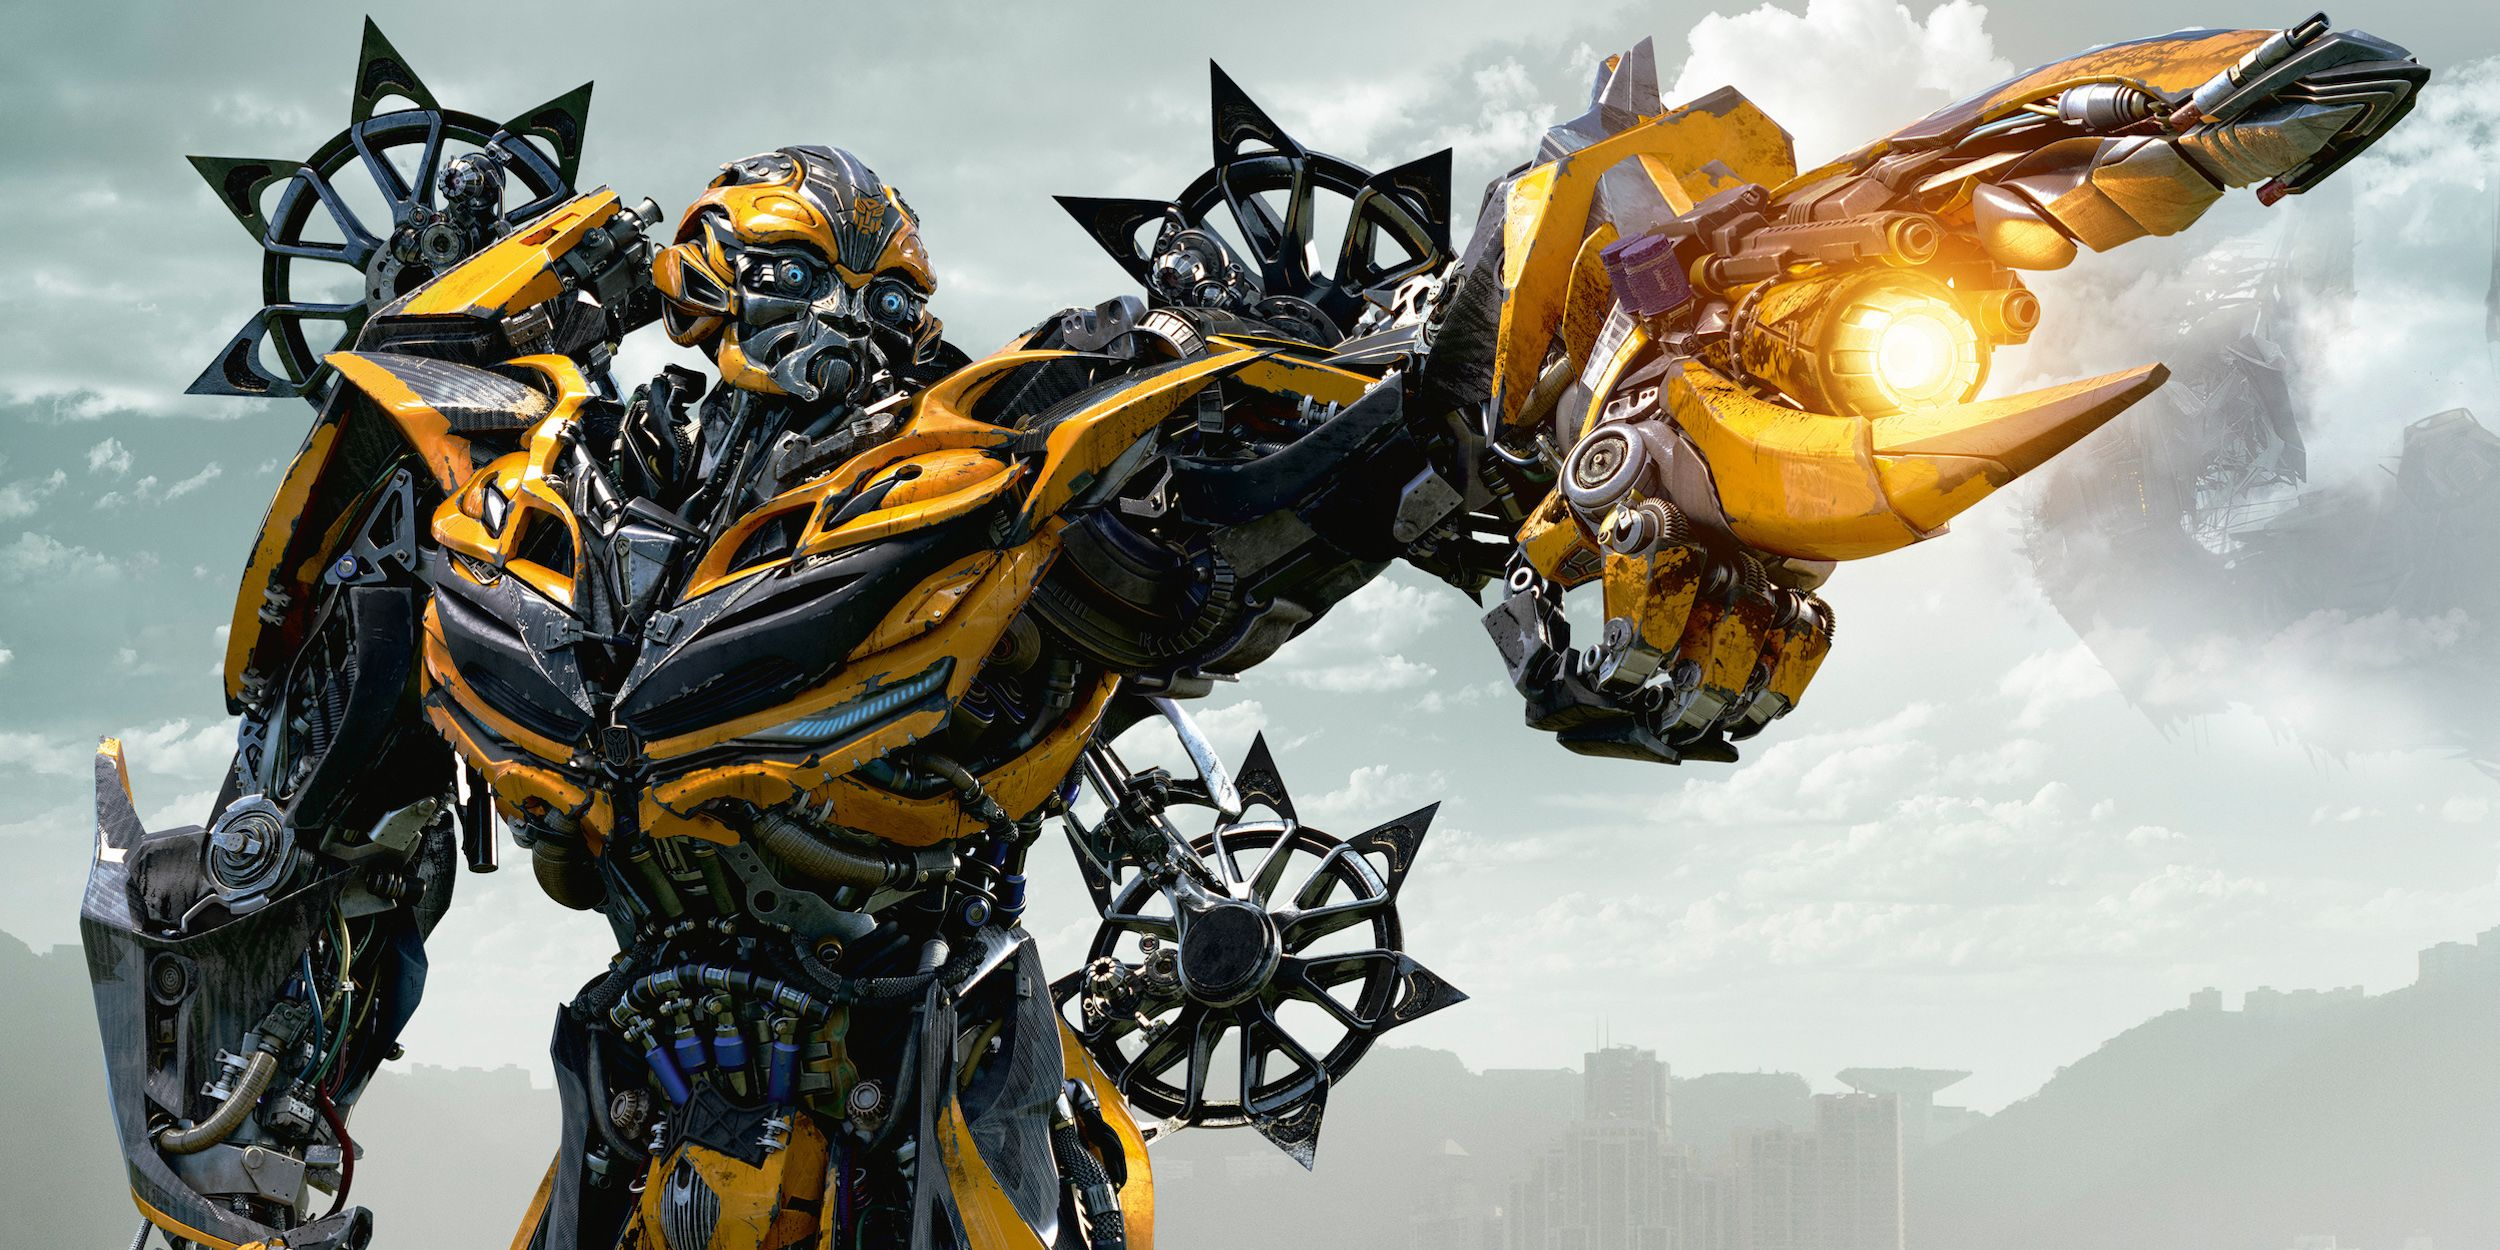 Bumblebee Sequel Will Channel More of Michael Bay's Transformers Approach